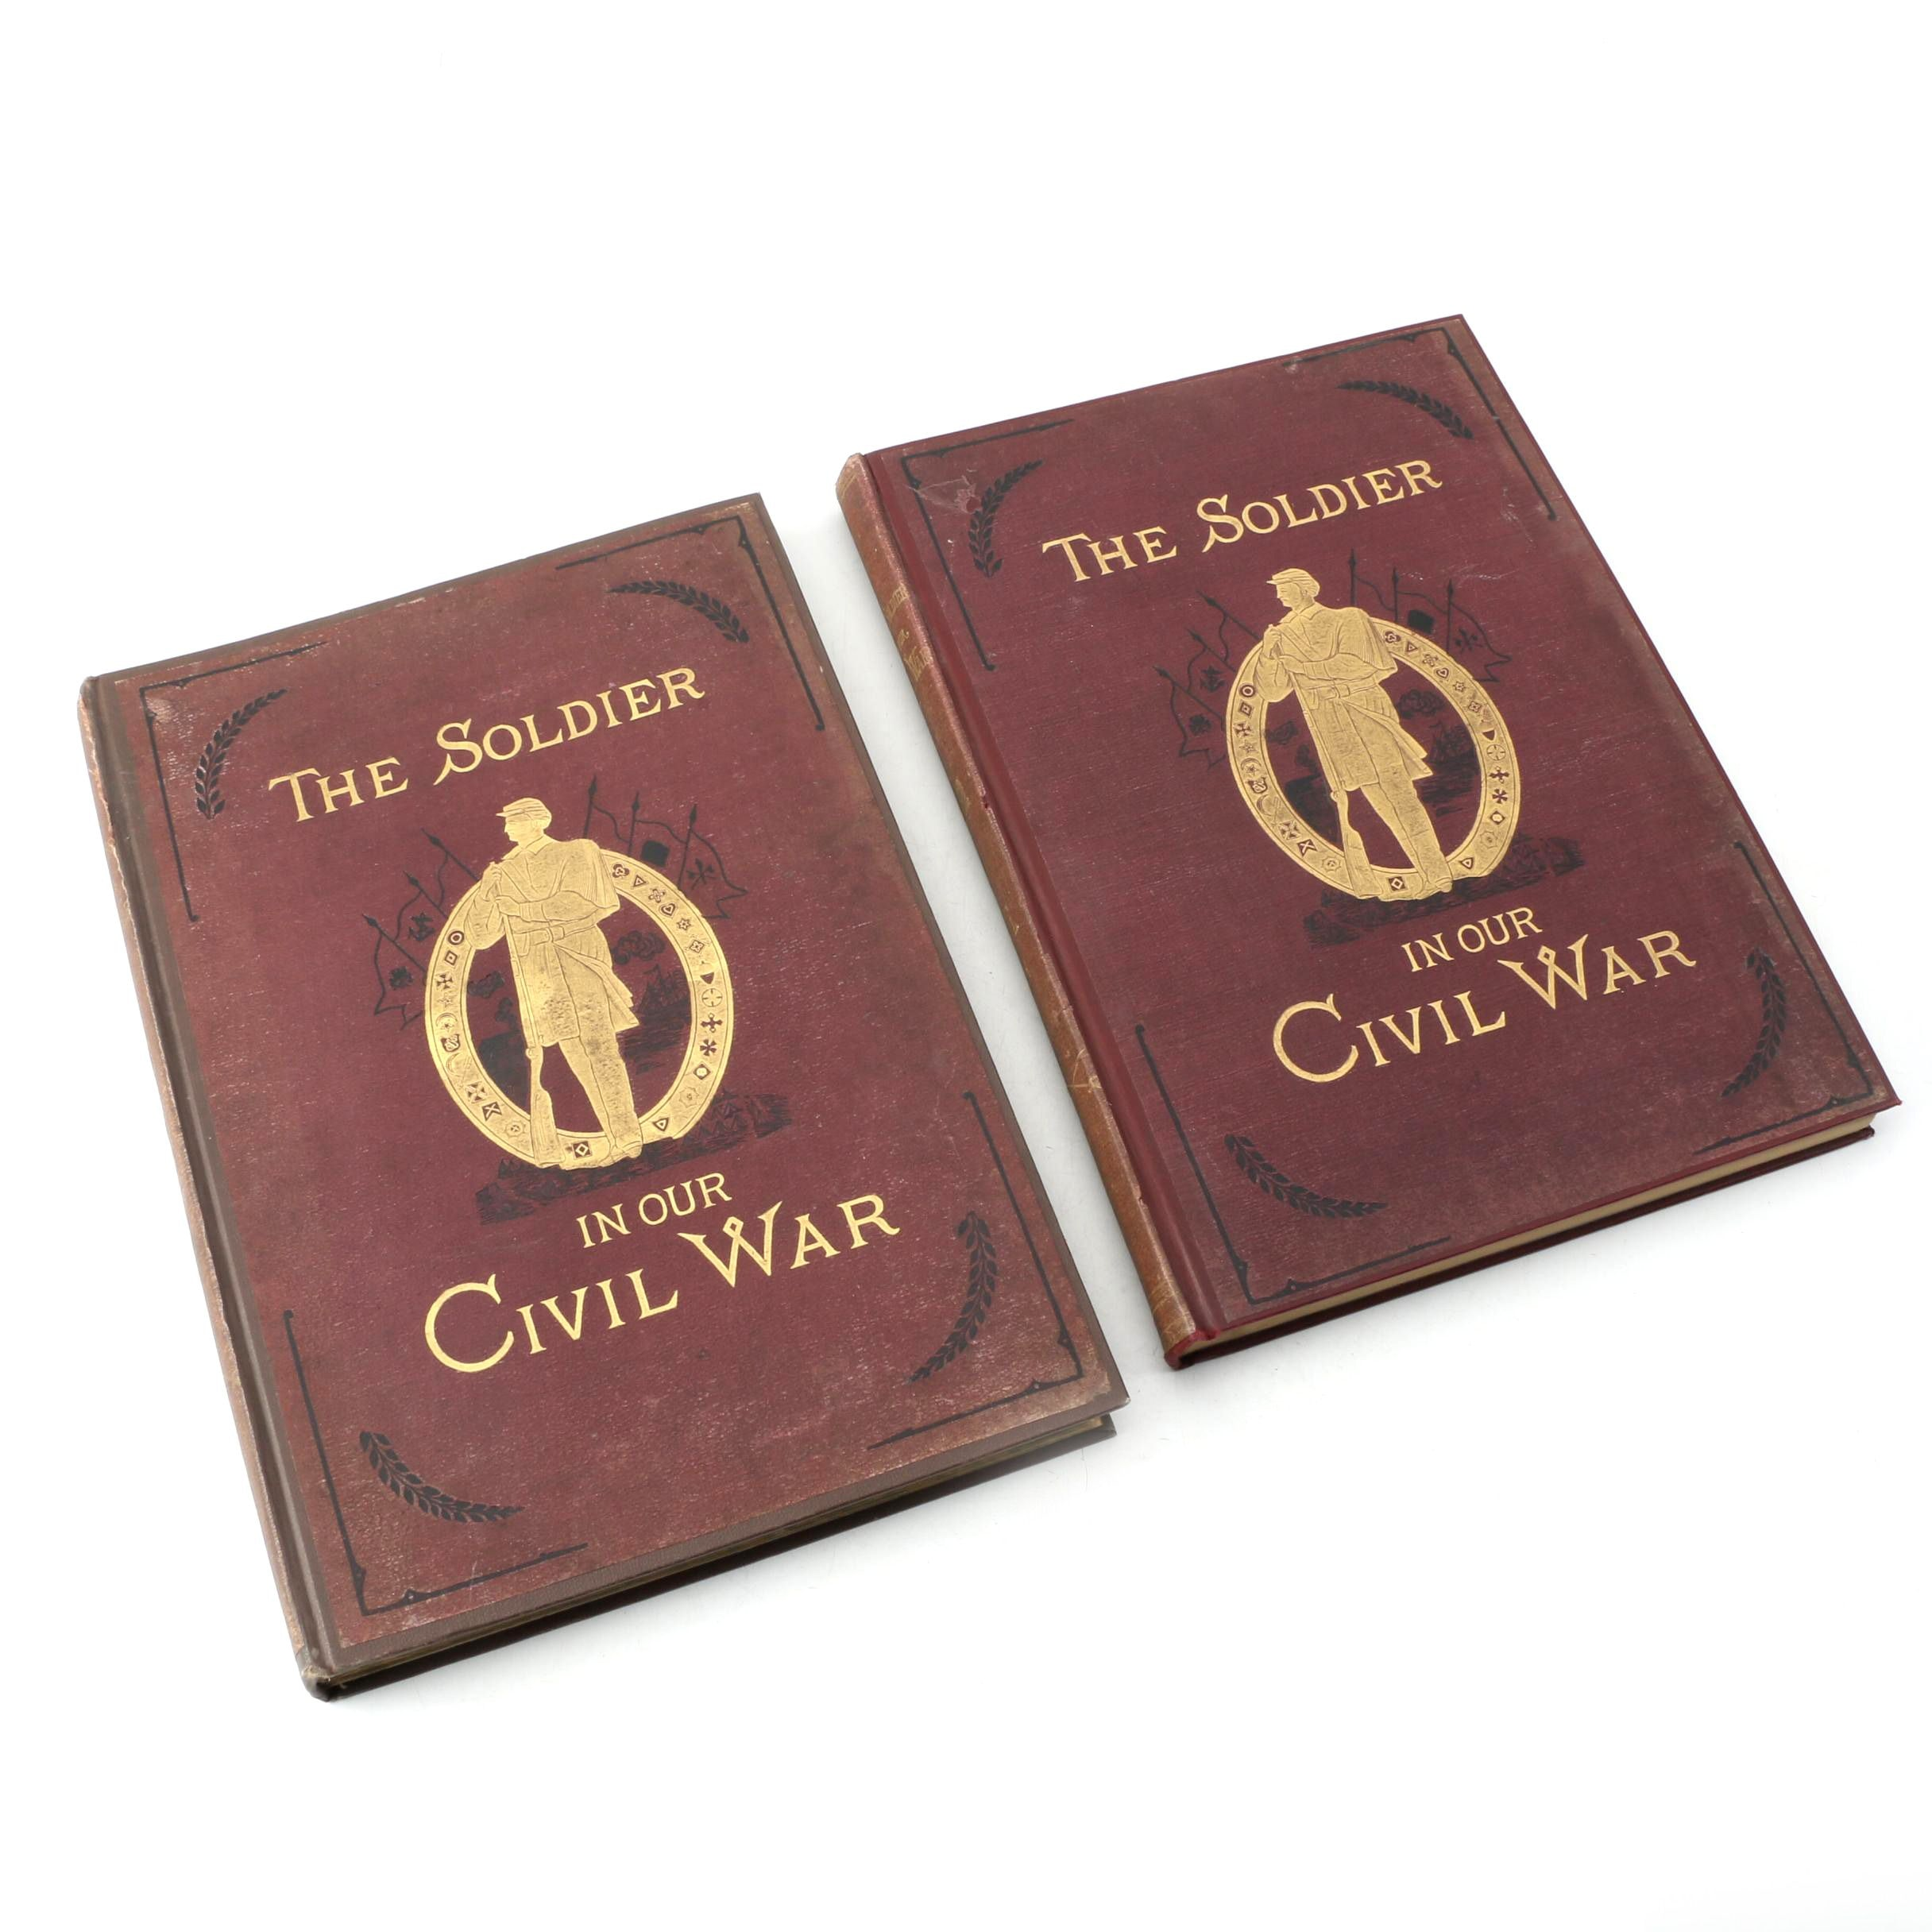 """1890 """"The Soldier In Our Civil War"""" by Frank Leslie in Two Volumes"""